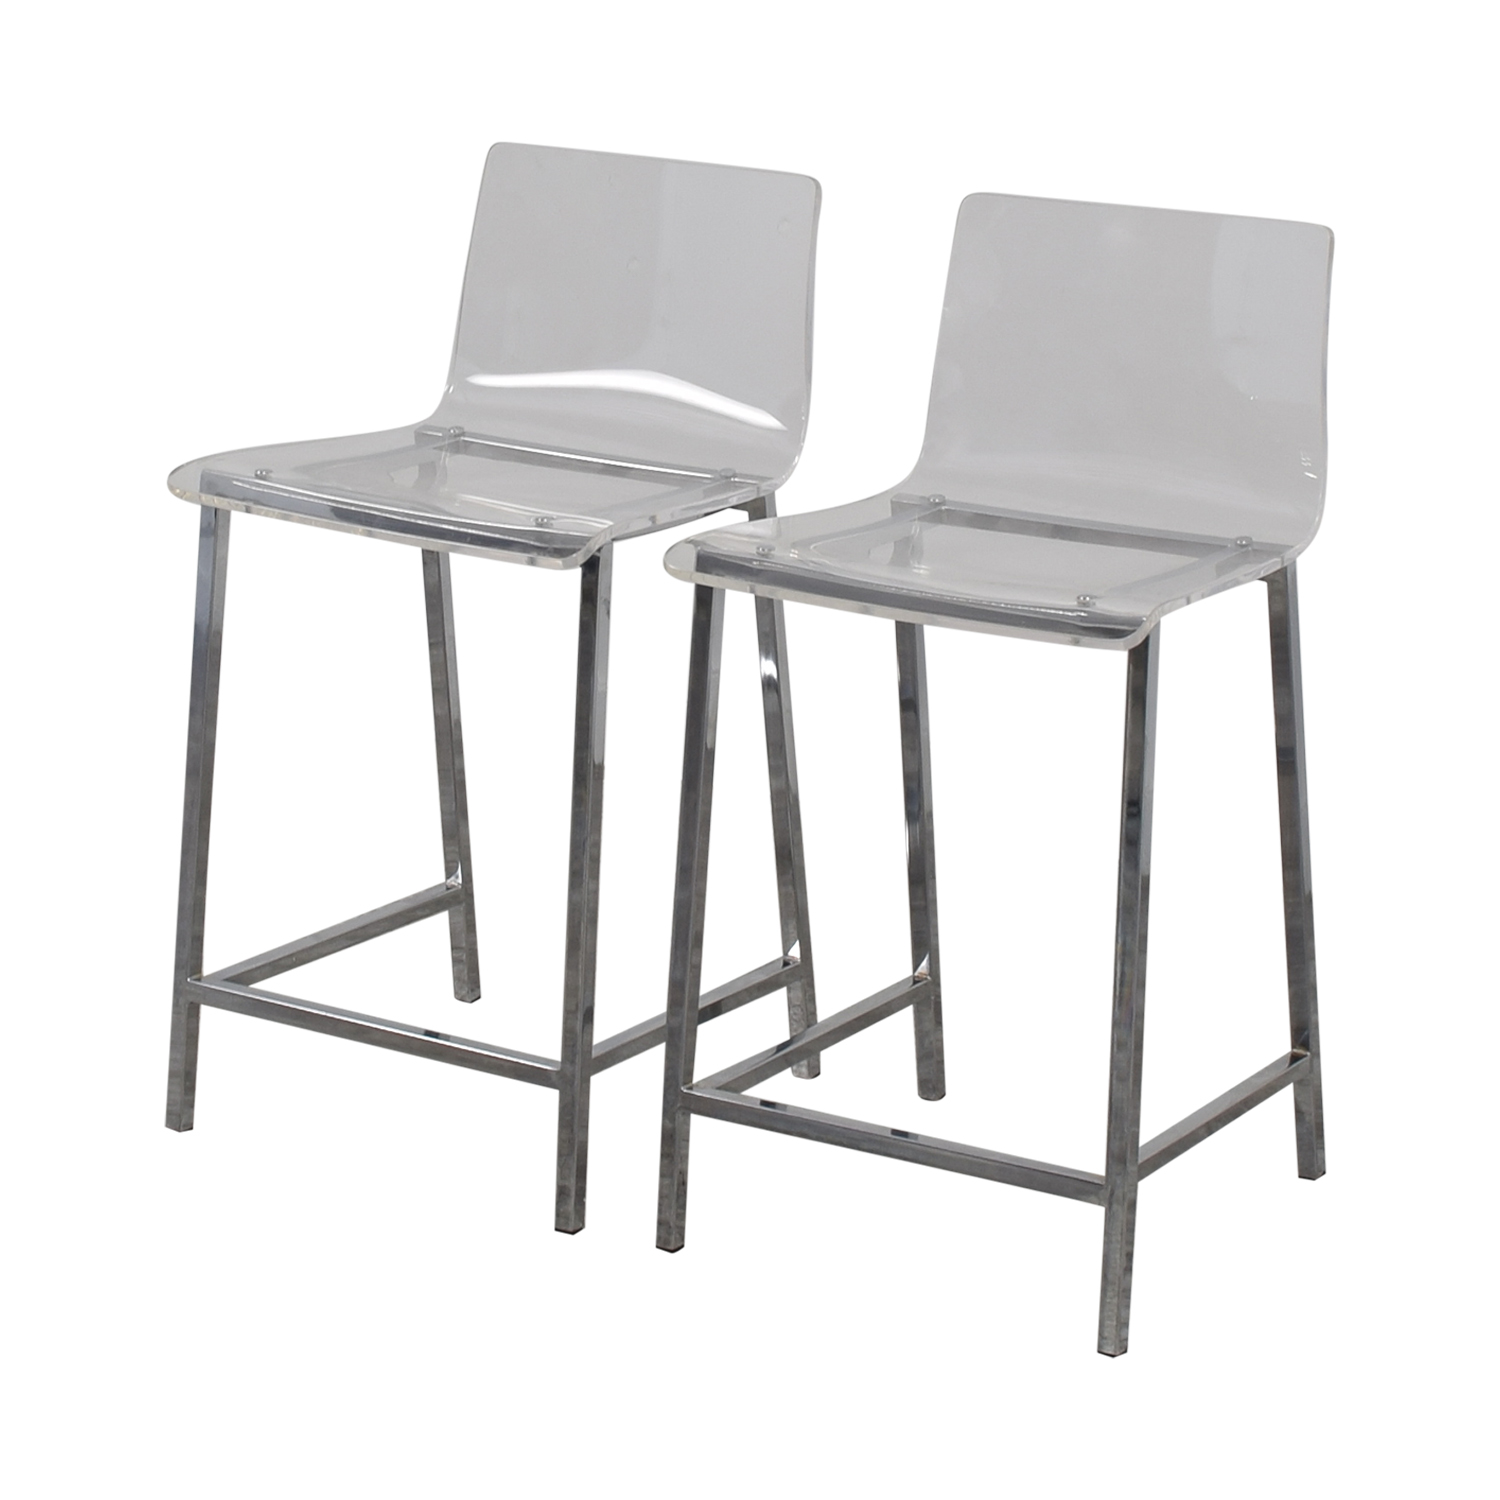 shop CB2 CB2 Clear Acrylic Bar Stools online